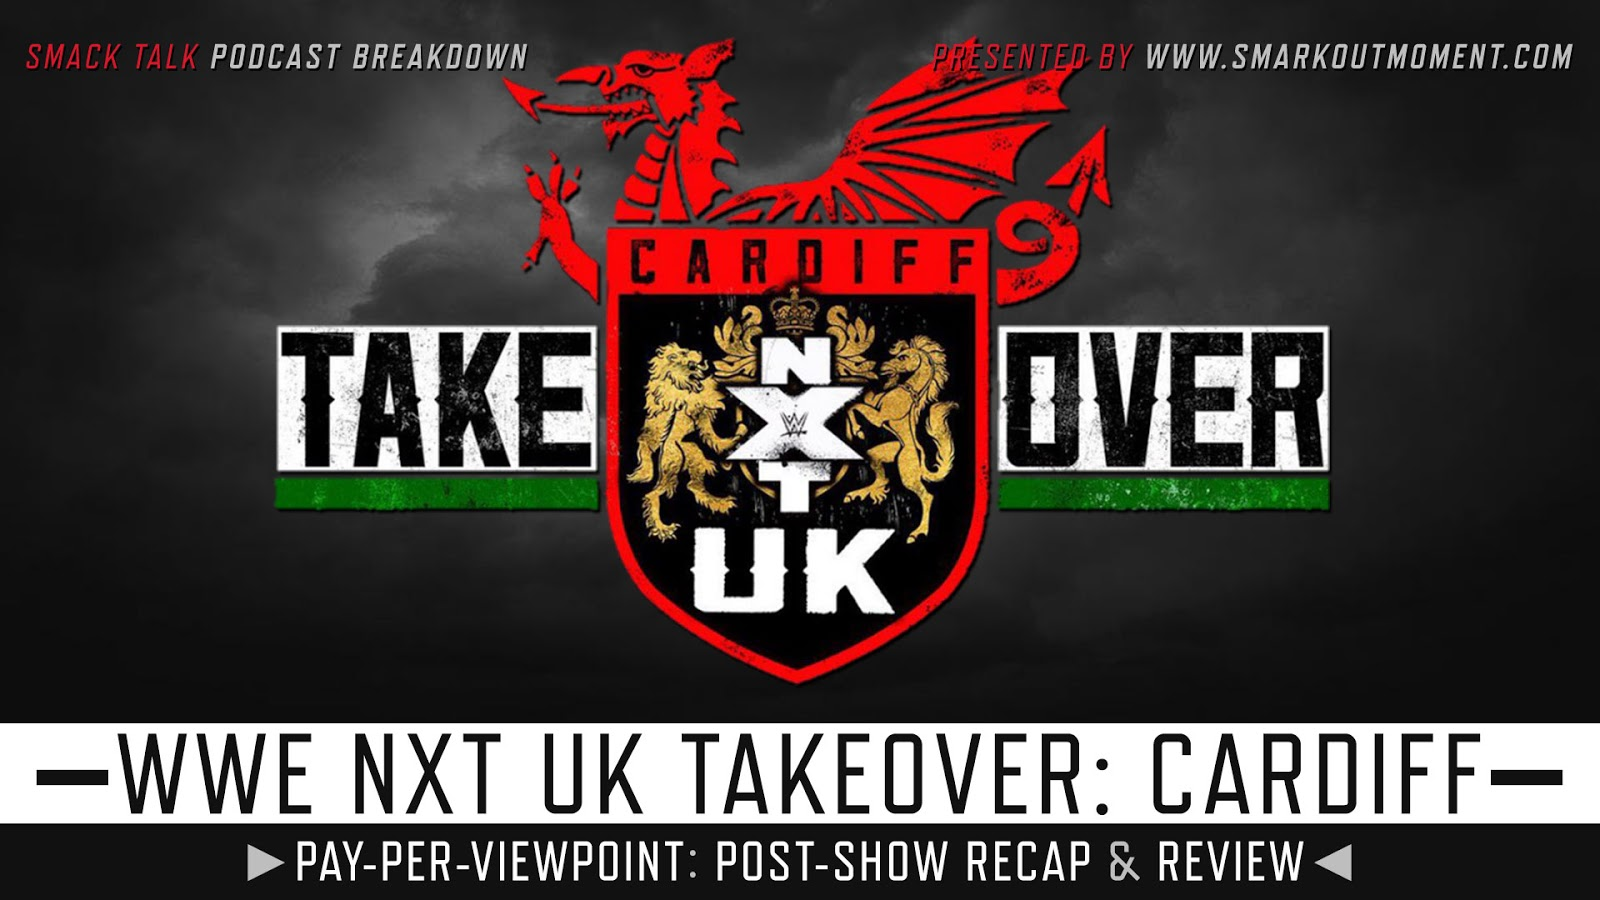 WWE NXT UK TakeOver: Cardiff Recap and Review Podcast